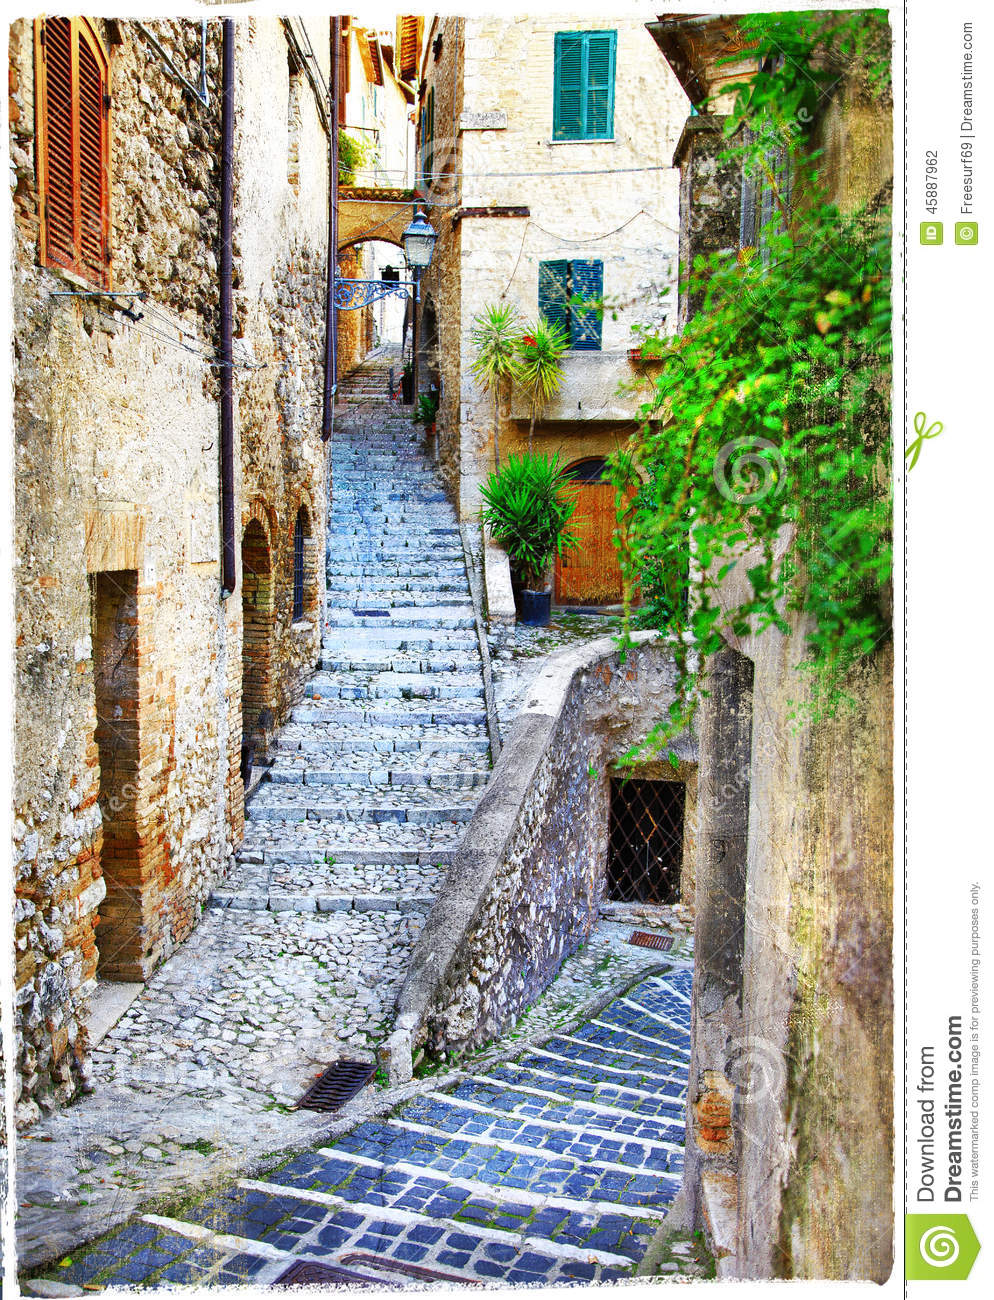 Stock Photo Charming Streets Medieval Towns Spello Italy Old Artistic Vintage Picture Image45886914 additionally Modern Mediterranean Garden Ideas likewise Mediterranean Modern House Designs together with Italian House Plans With Pool as well Mediterranean Homes With Pools. on italian house plans with courtyard